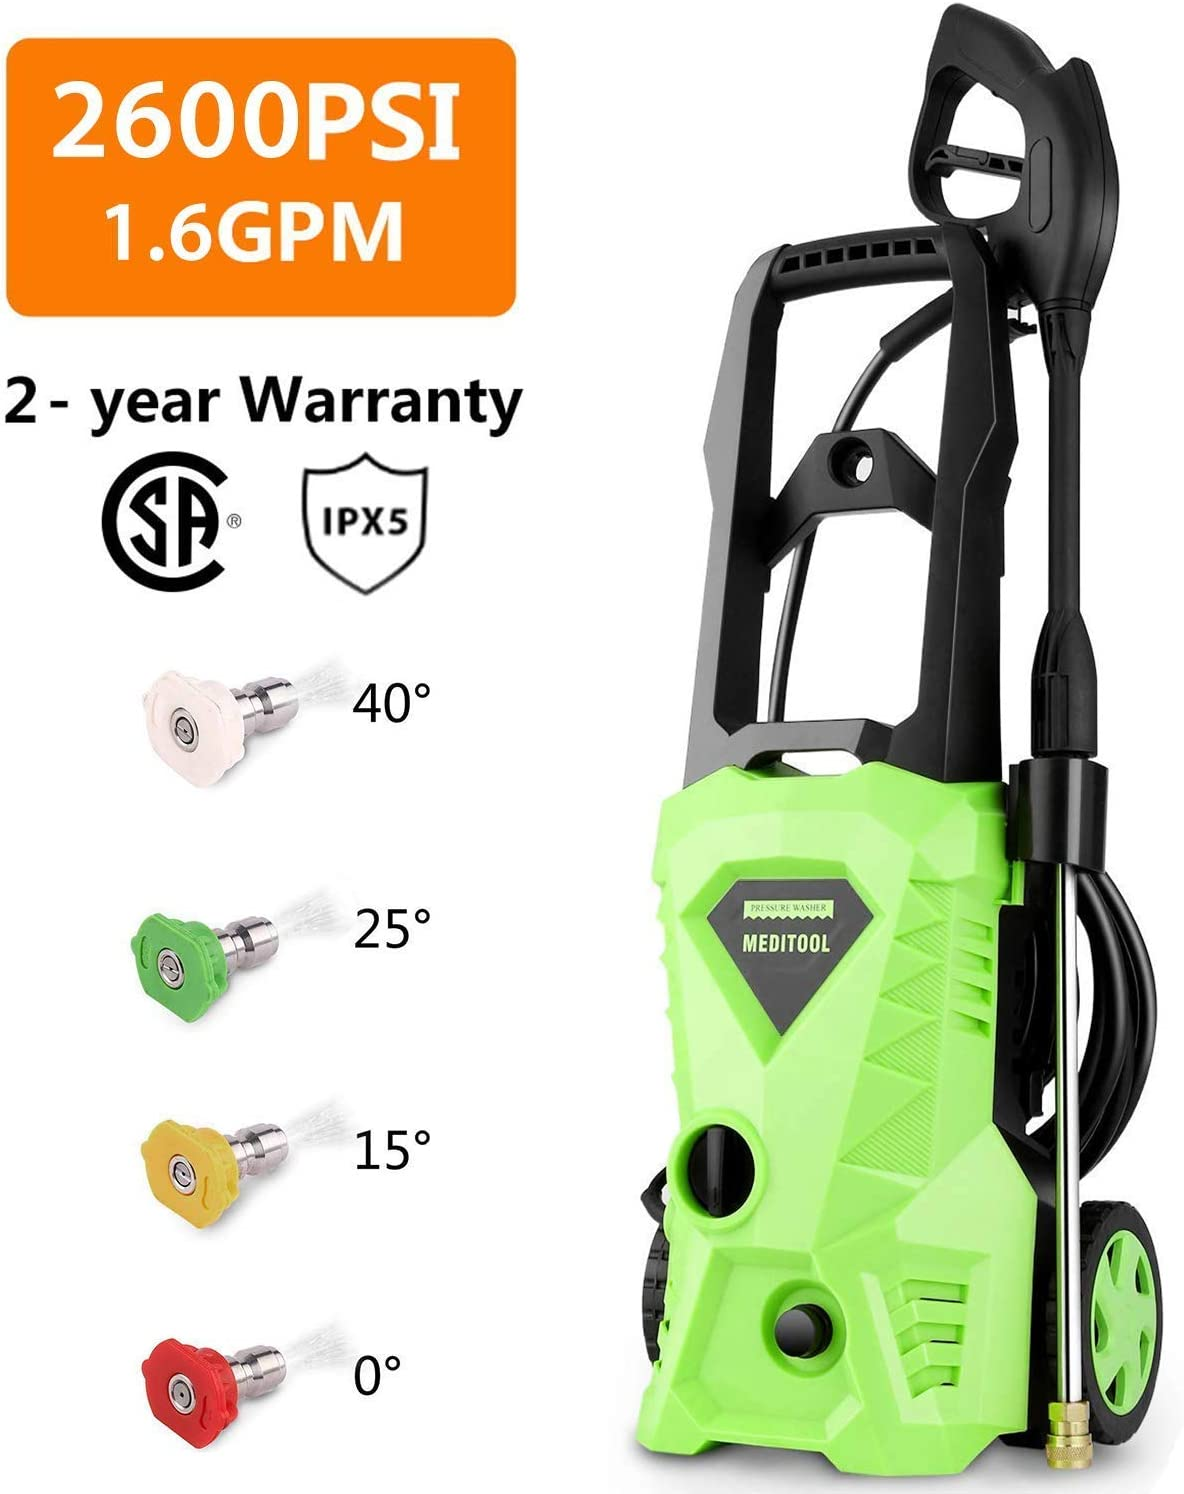 Homdox 2600 PSI Power Pressure Washer 1600W Electric Pressure Washer 1.6GPM High Pressure Power Washer with Power Hose Gun 4 Nozzle